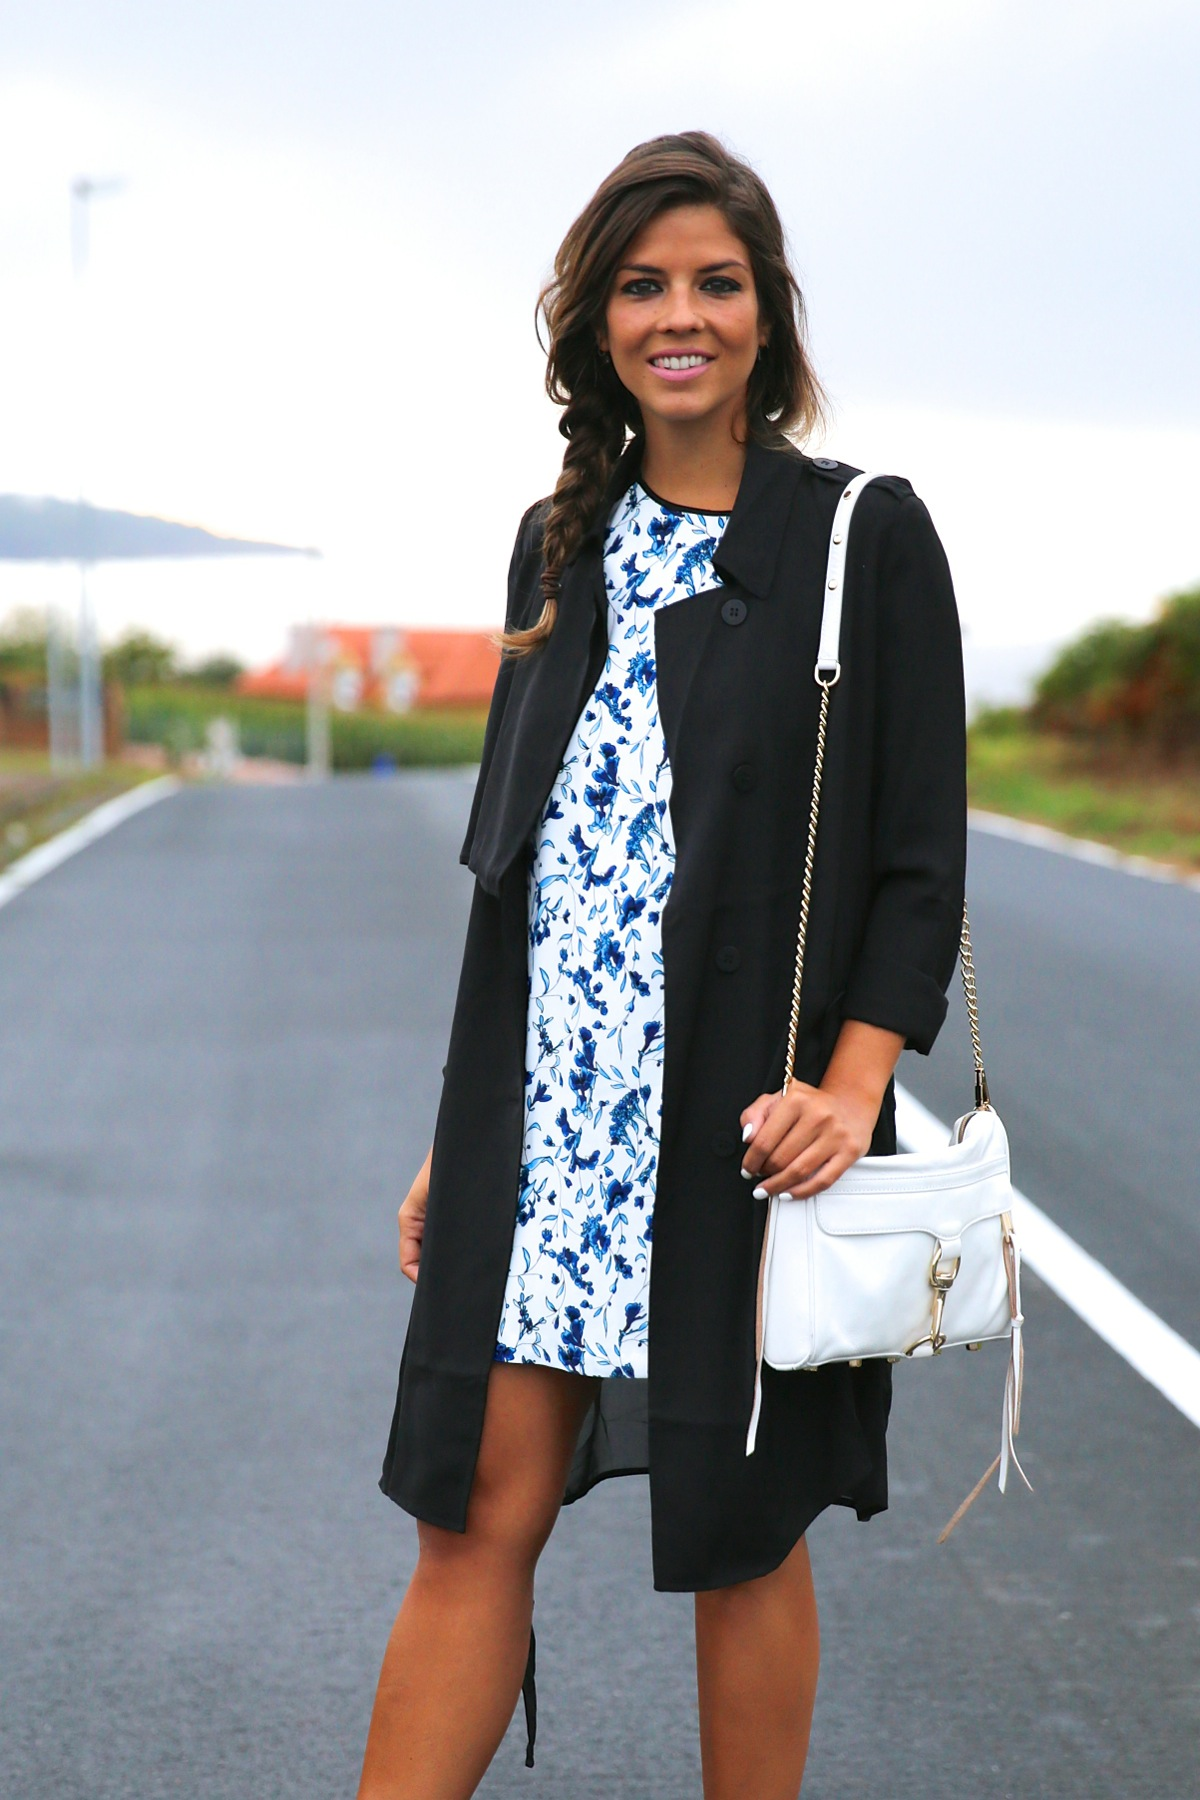 trendy_taste-look-outfit-street_style-ootd-blog-blogger-fashion_spain-moda_españa-combat_boots-botas_rock-parka-kimono-bolso_blanco-white_bag-galicia-vestido_flores-flower_print-dress-13